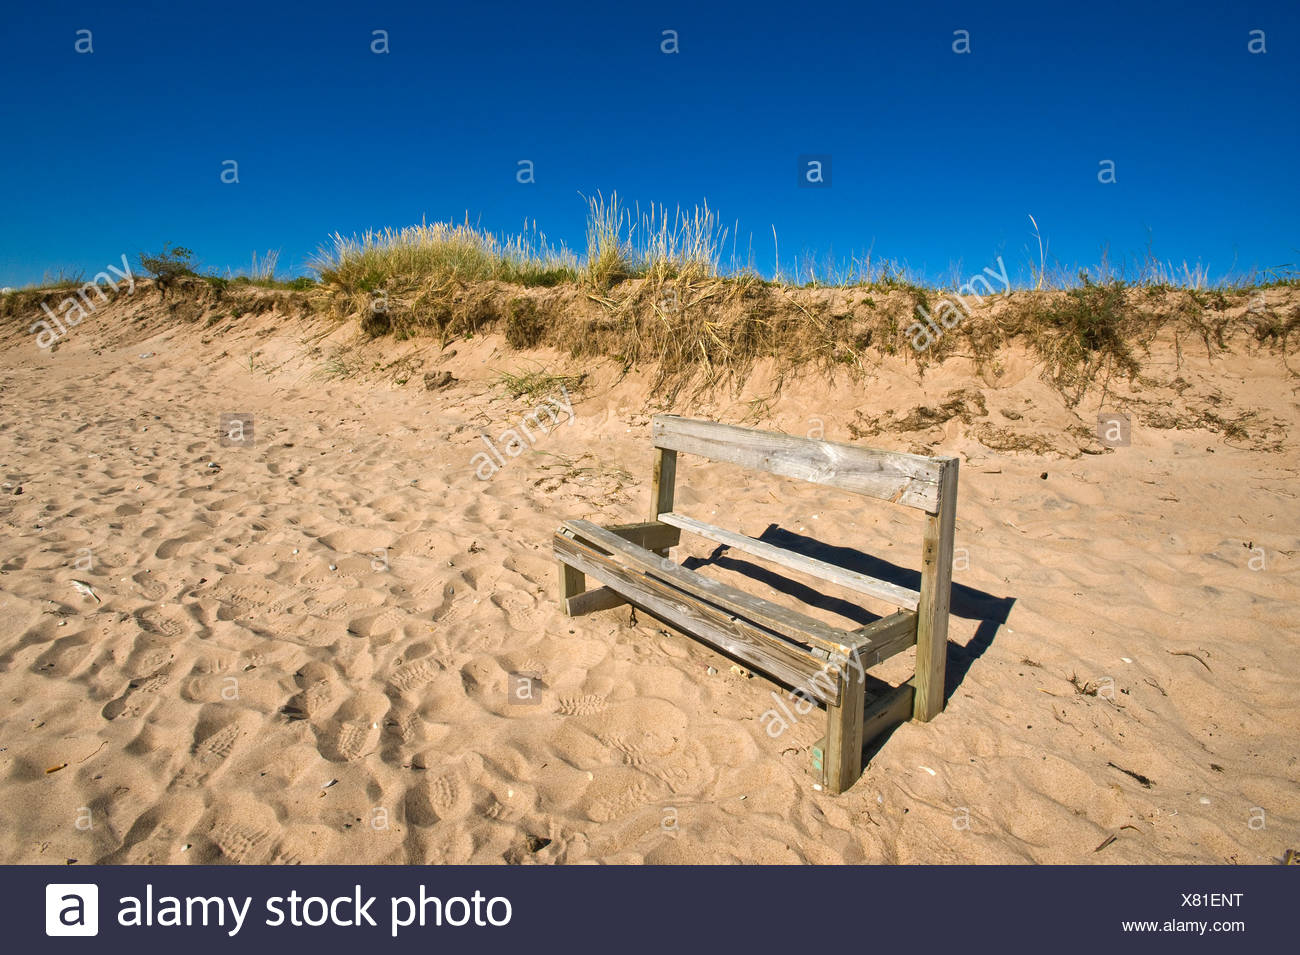 Bench in a ruinous condition in the dunes, Harielaide peninsula, Vilsandi National Park, Saaremaa, island in the Baltic Sea - Stock Image